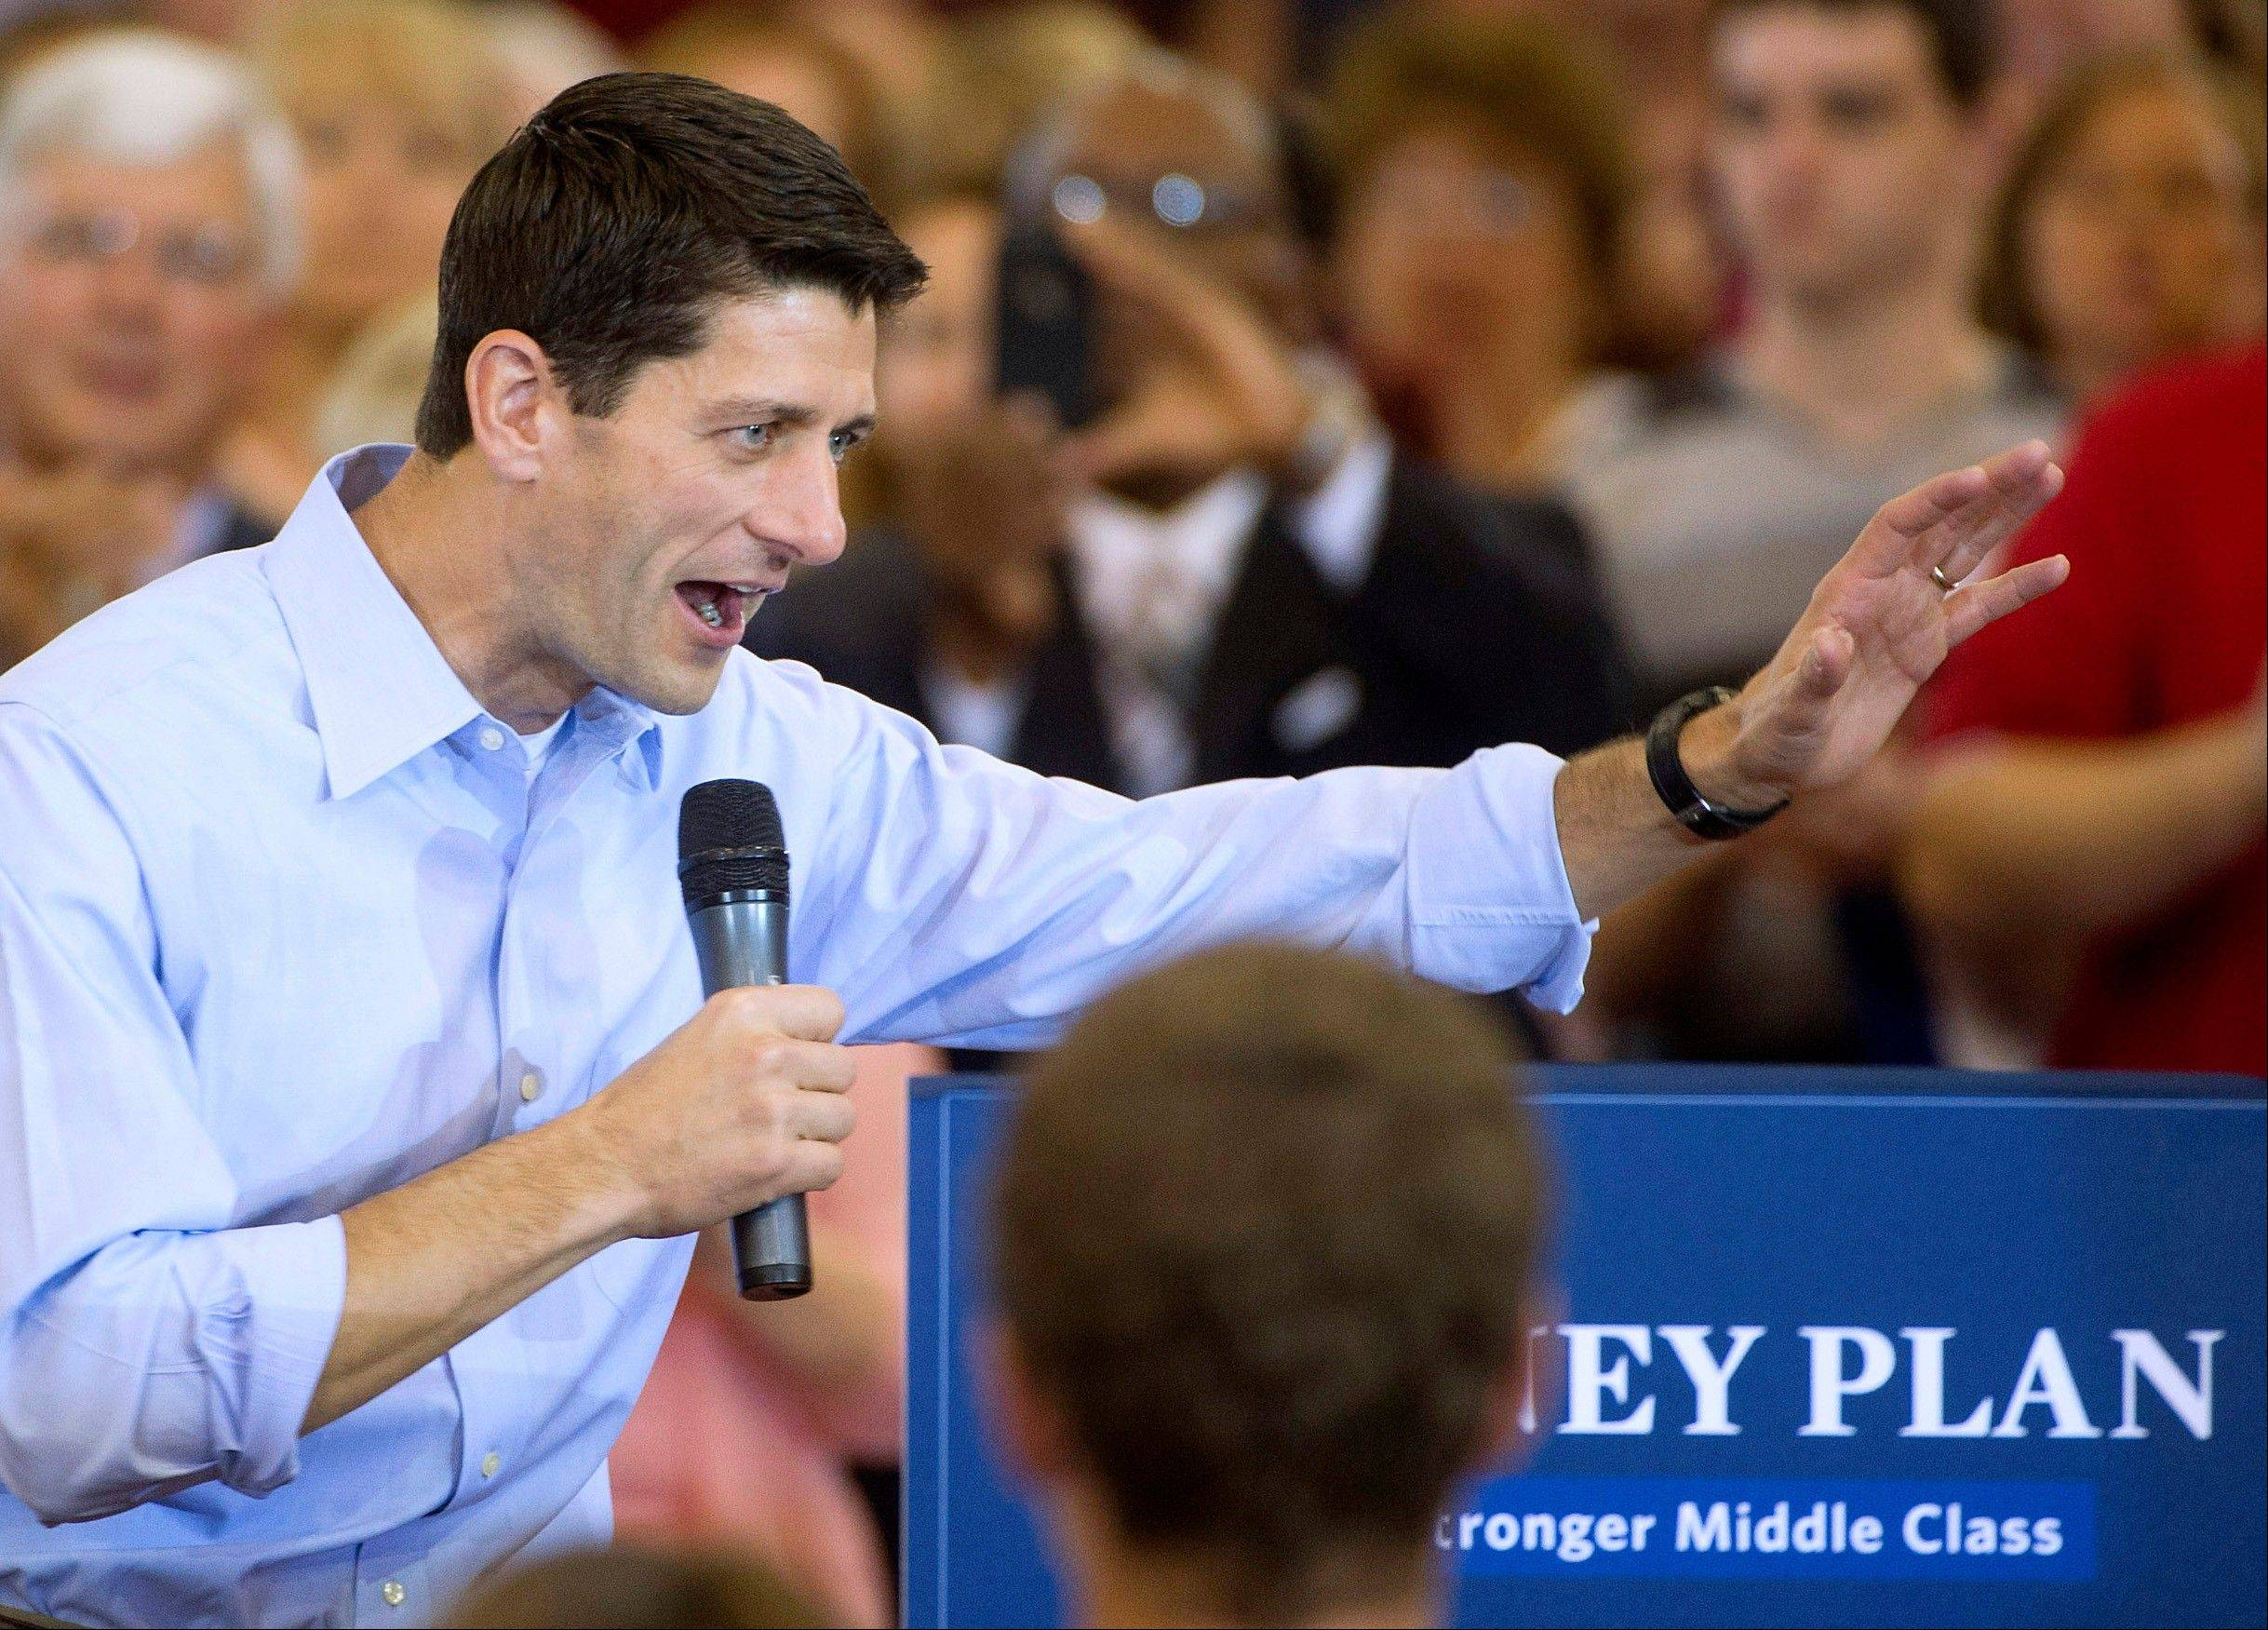 Republican vice presidential candidate Rep. Paul Ryan, R-Wis. speaks at a campaign stop at Walsh University in North Canton, Ohio.